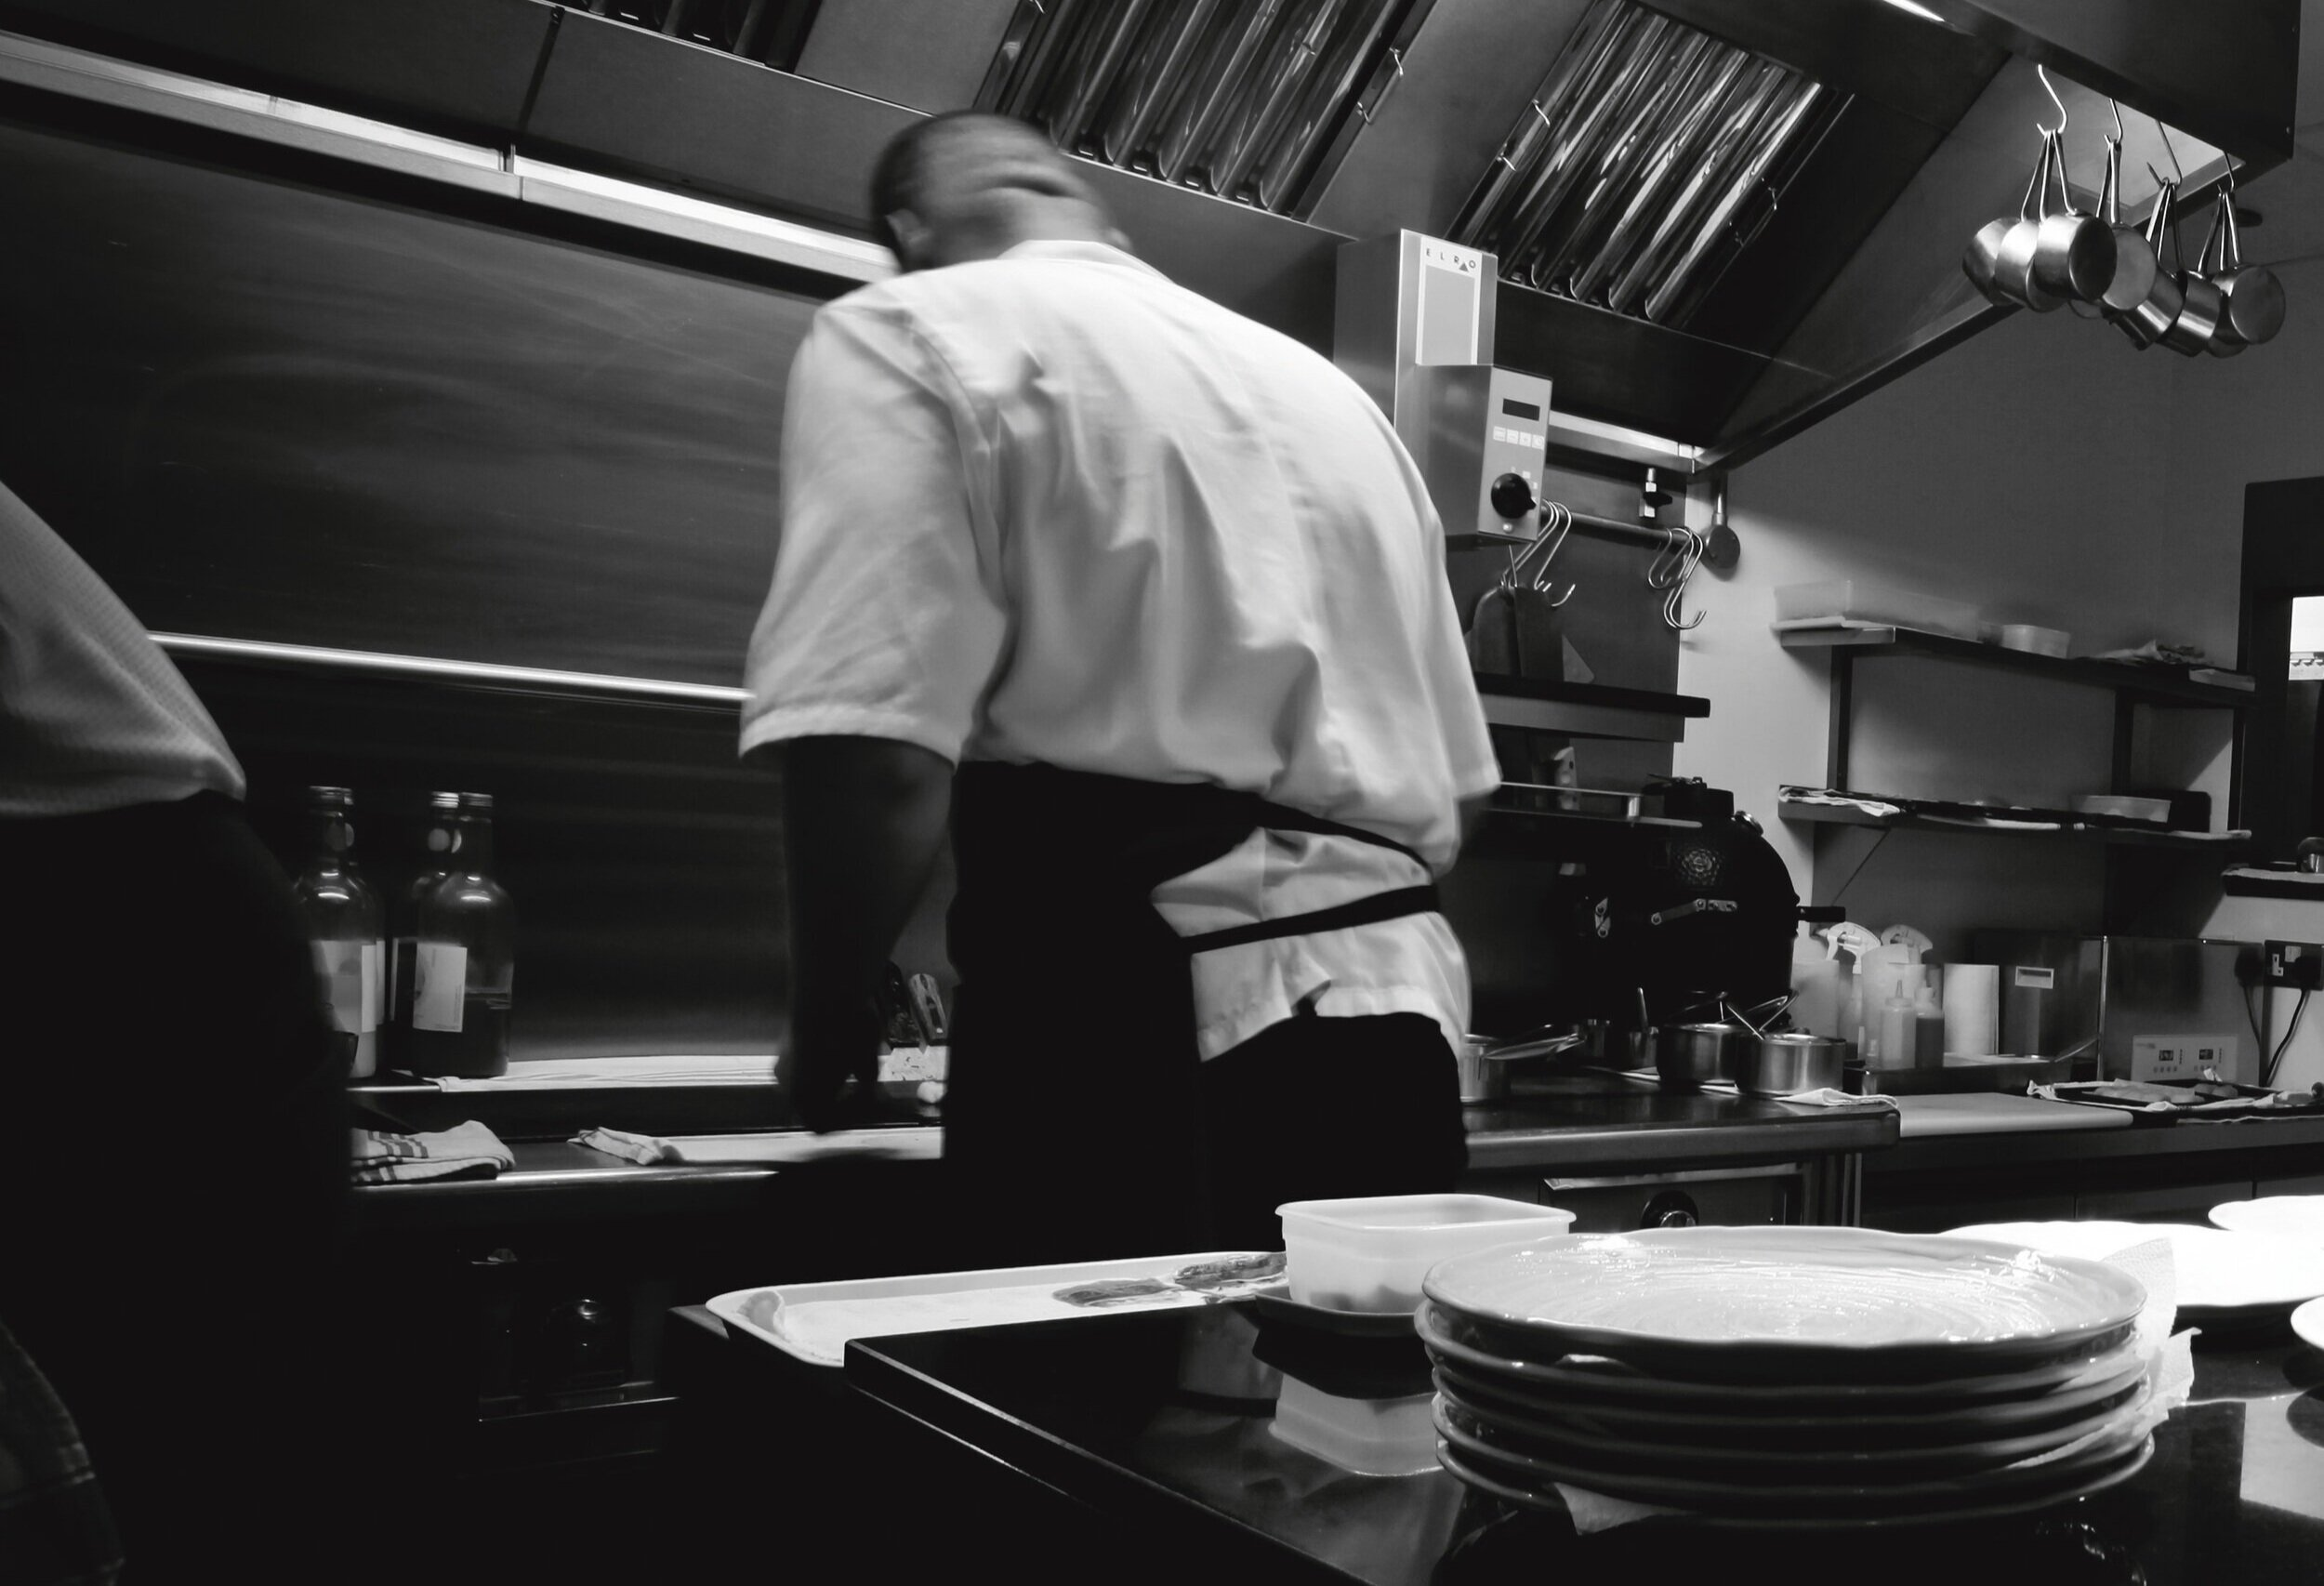 Photo: John Arandhara-Blackwell, Too Many Chefs, Only One Indian